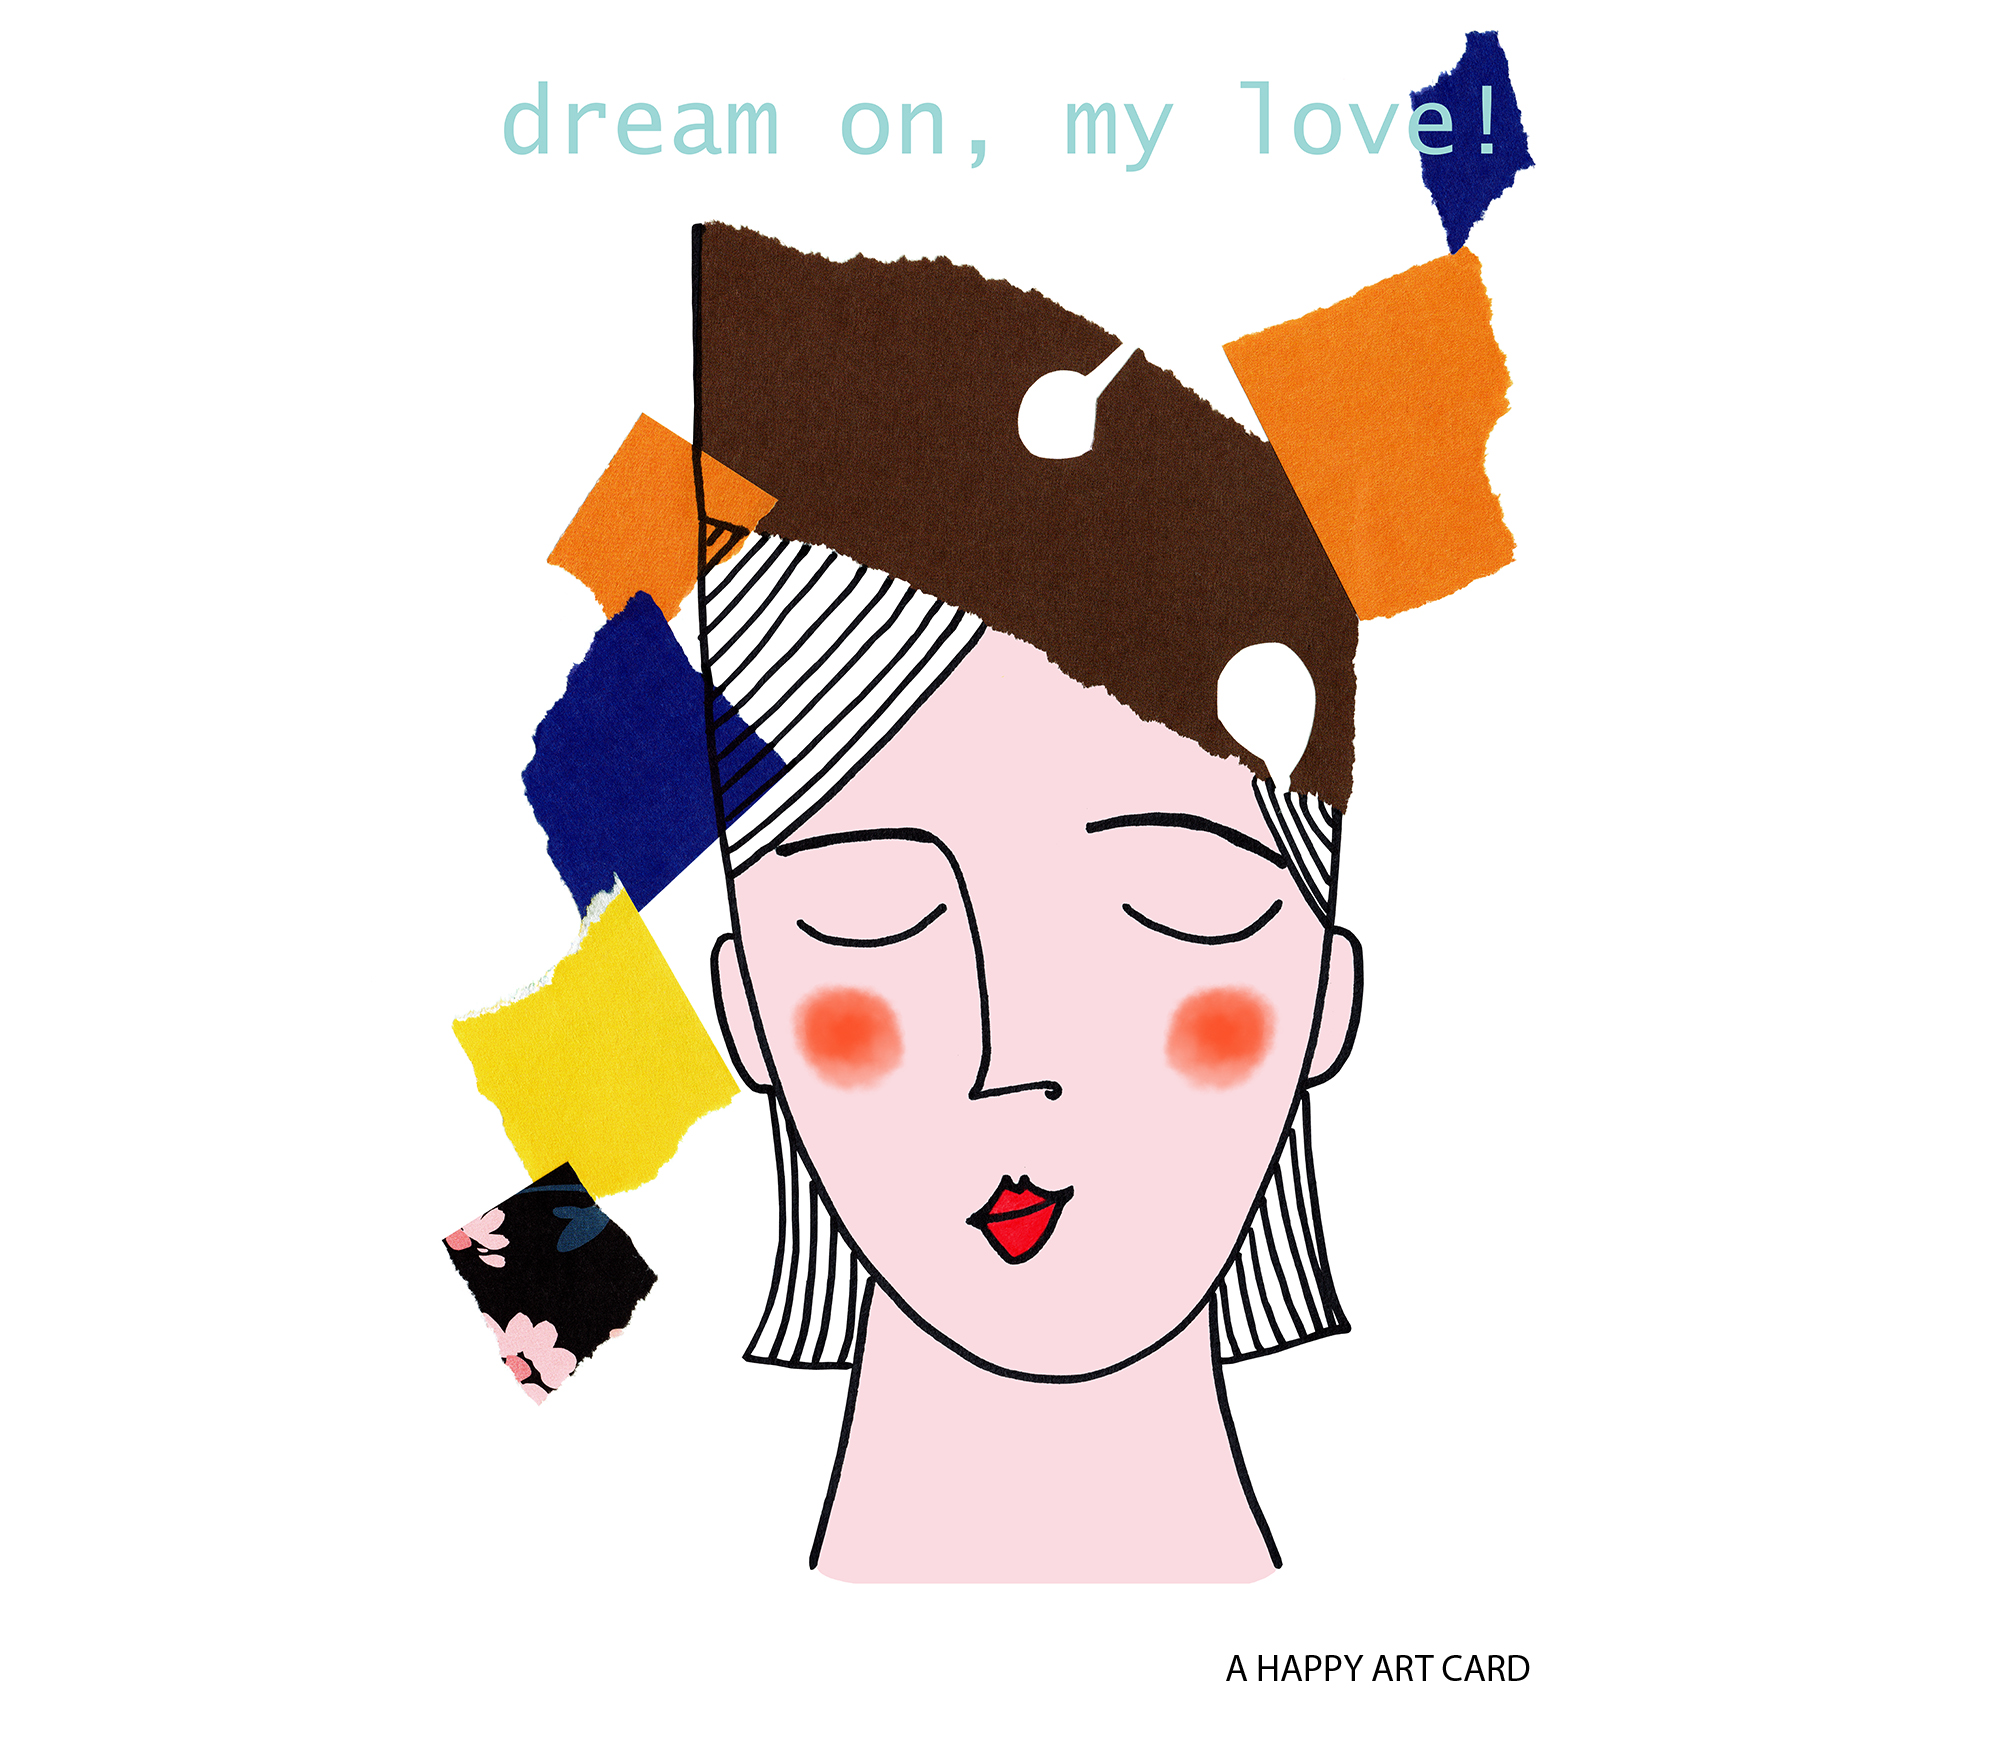 happy art card 05 dream on A6 Portrait 100 Etsy jpeg